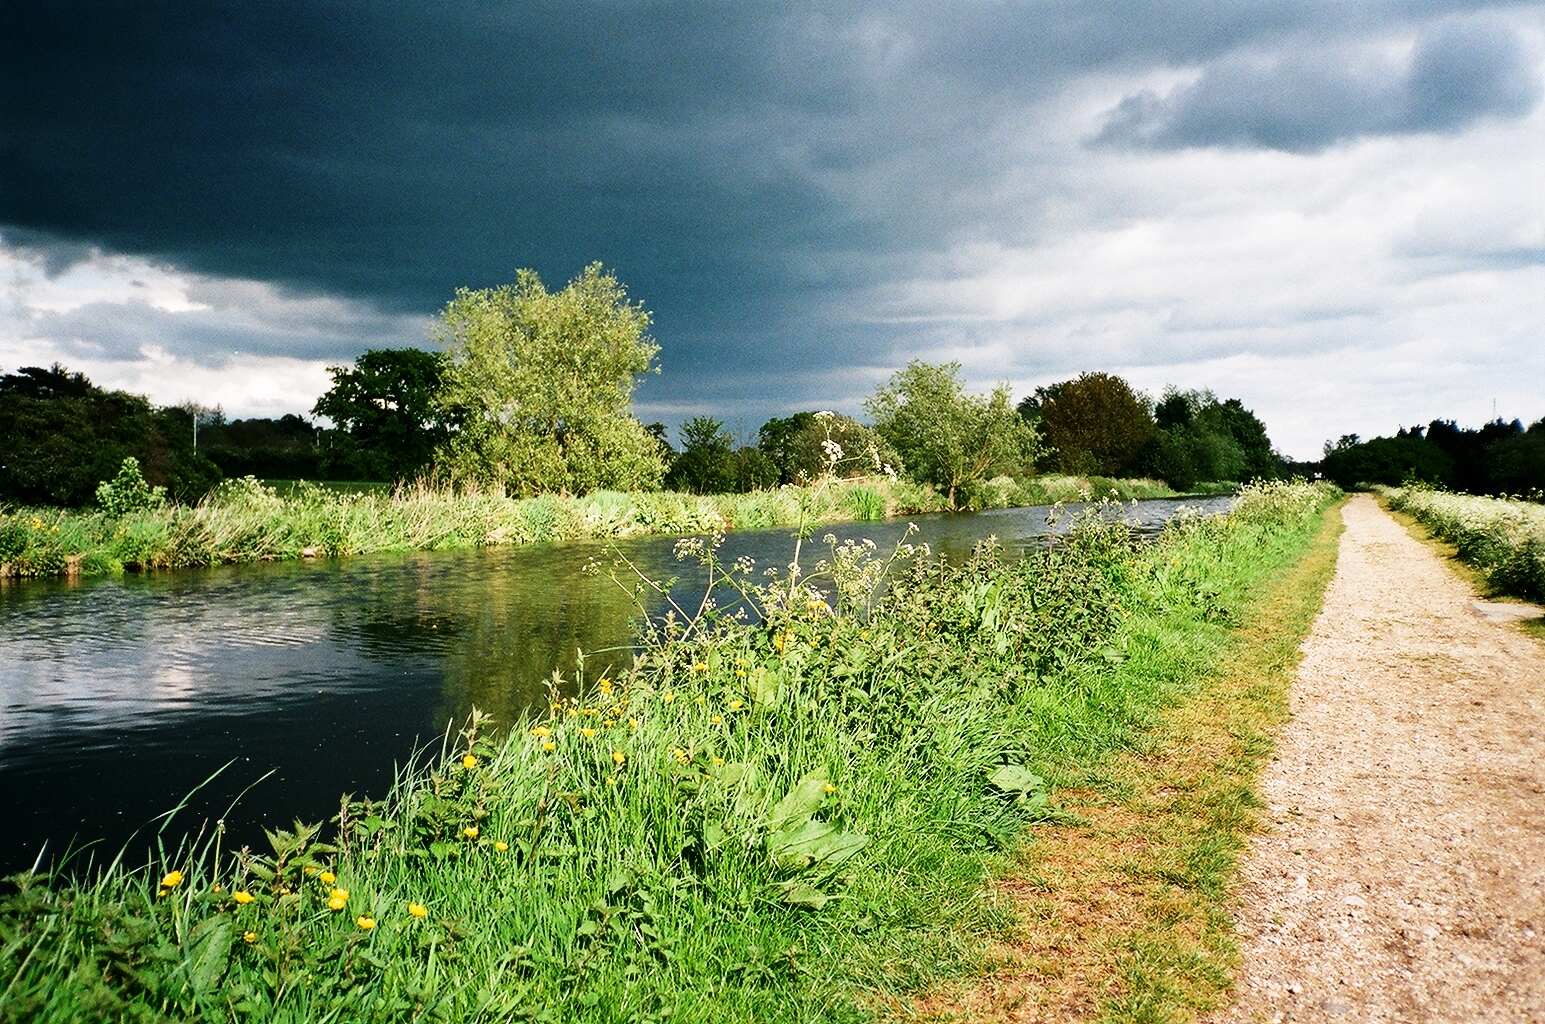 grand union canal on the way to winkwell author r rance ian